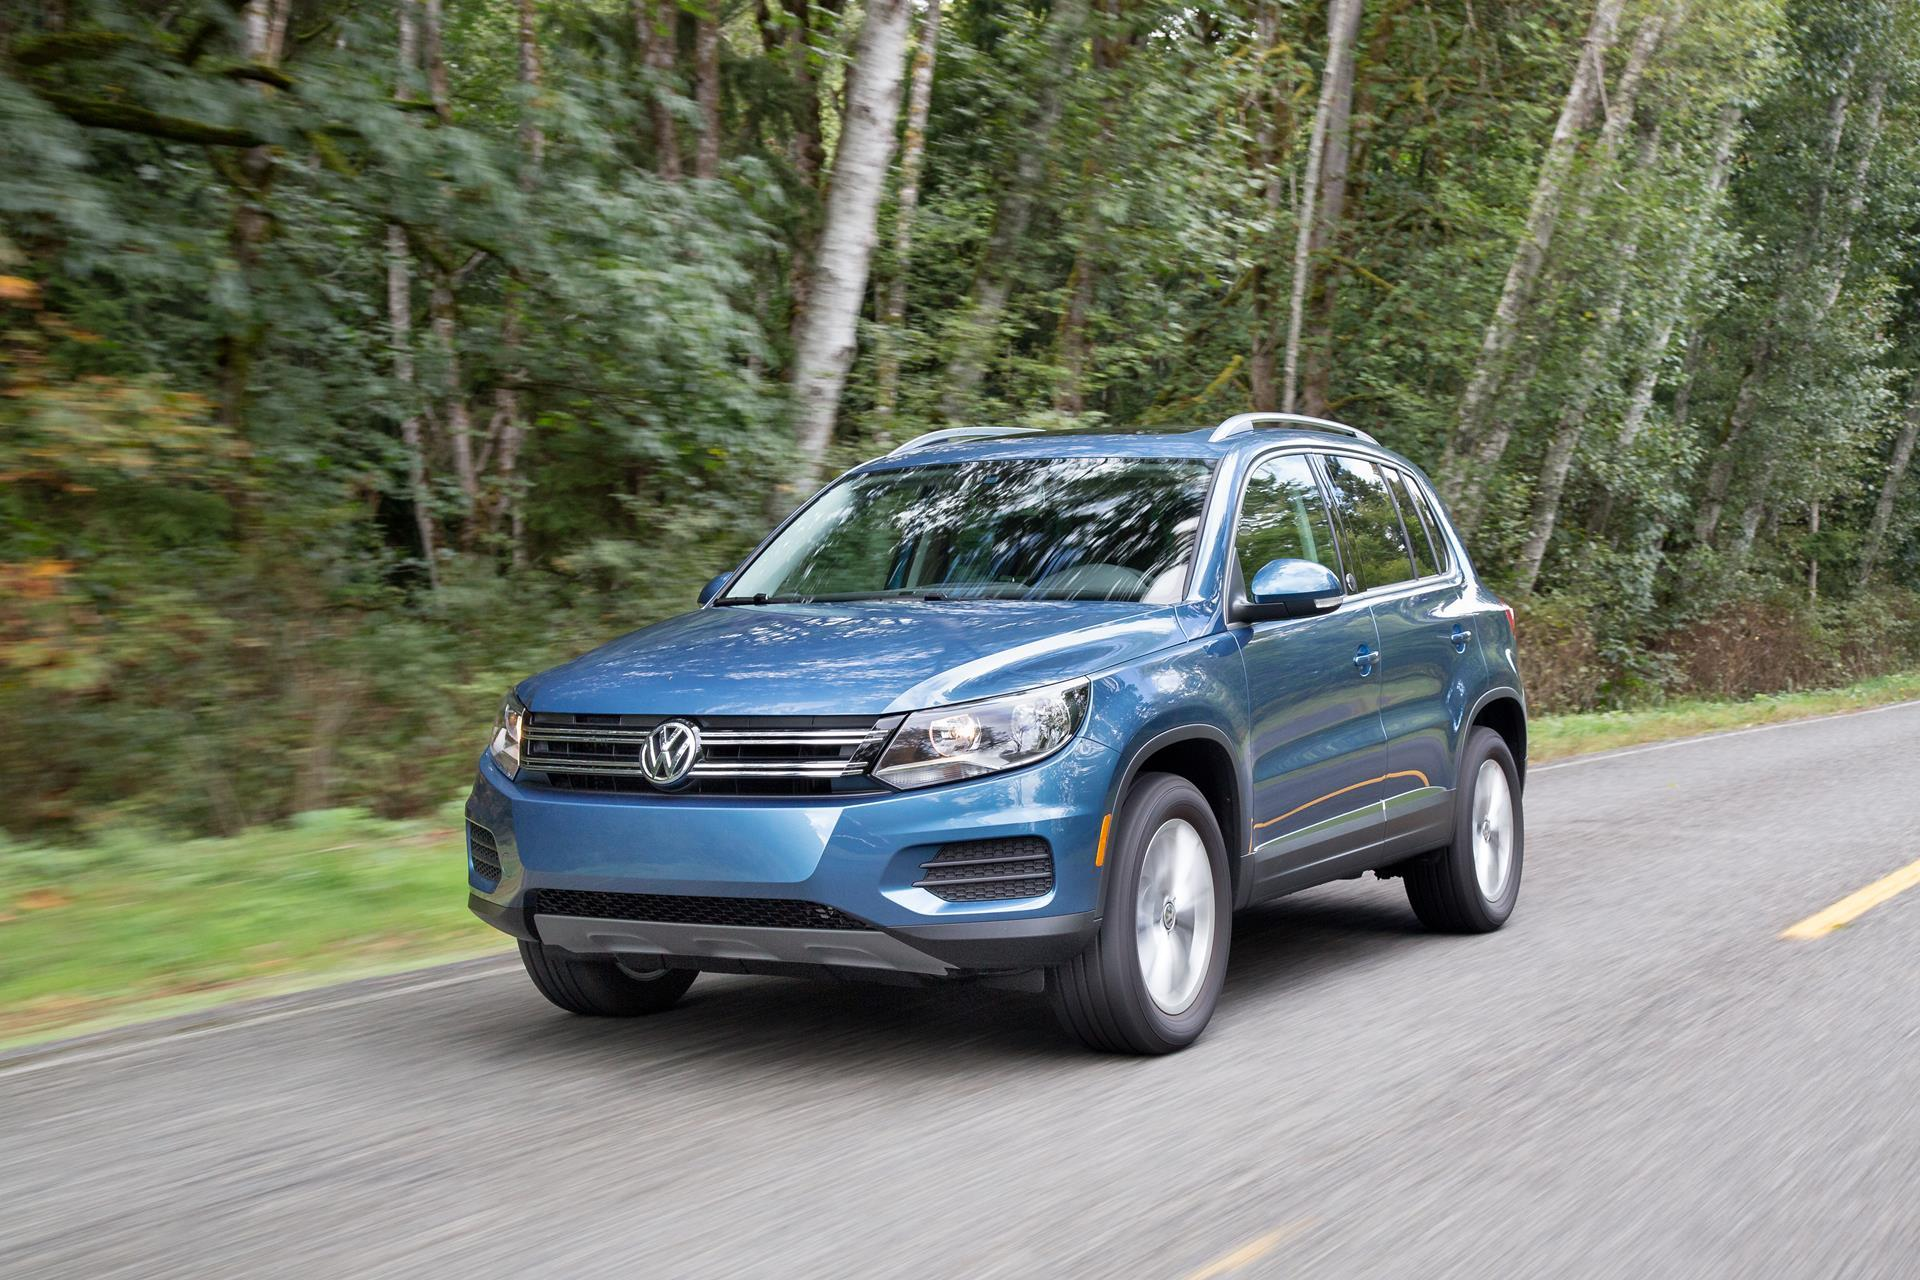 2017 Volkswagen Tiguan News and Information